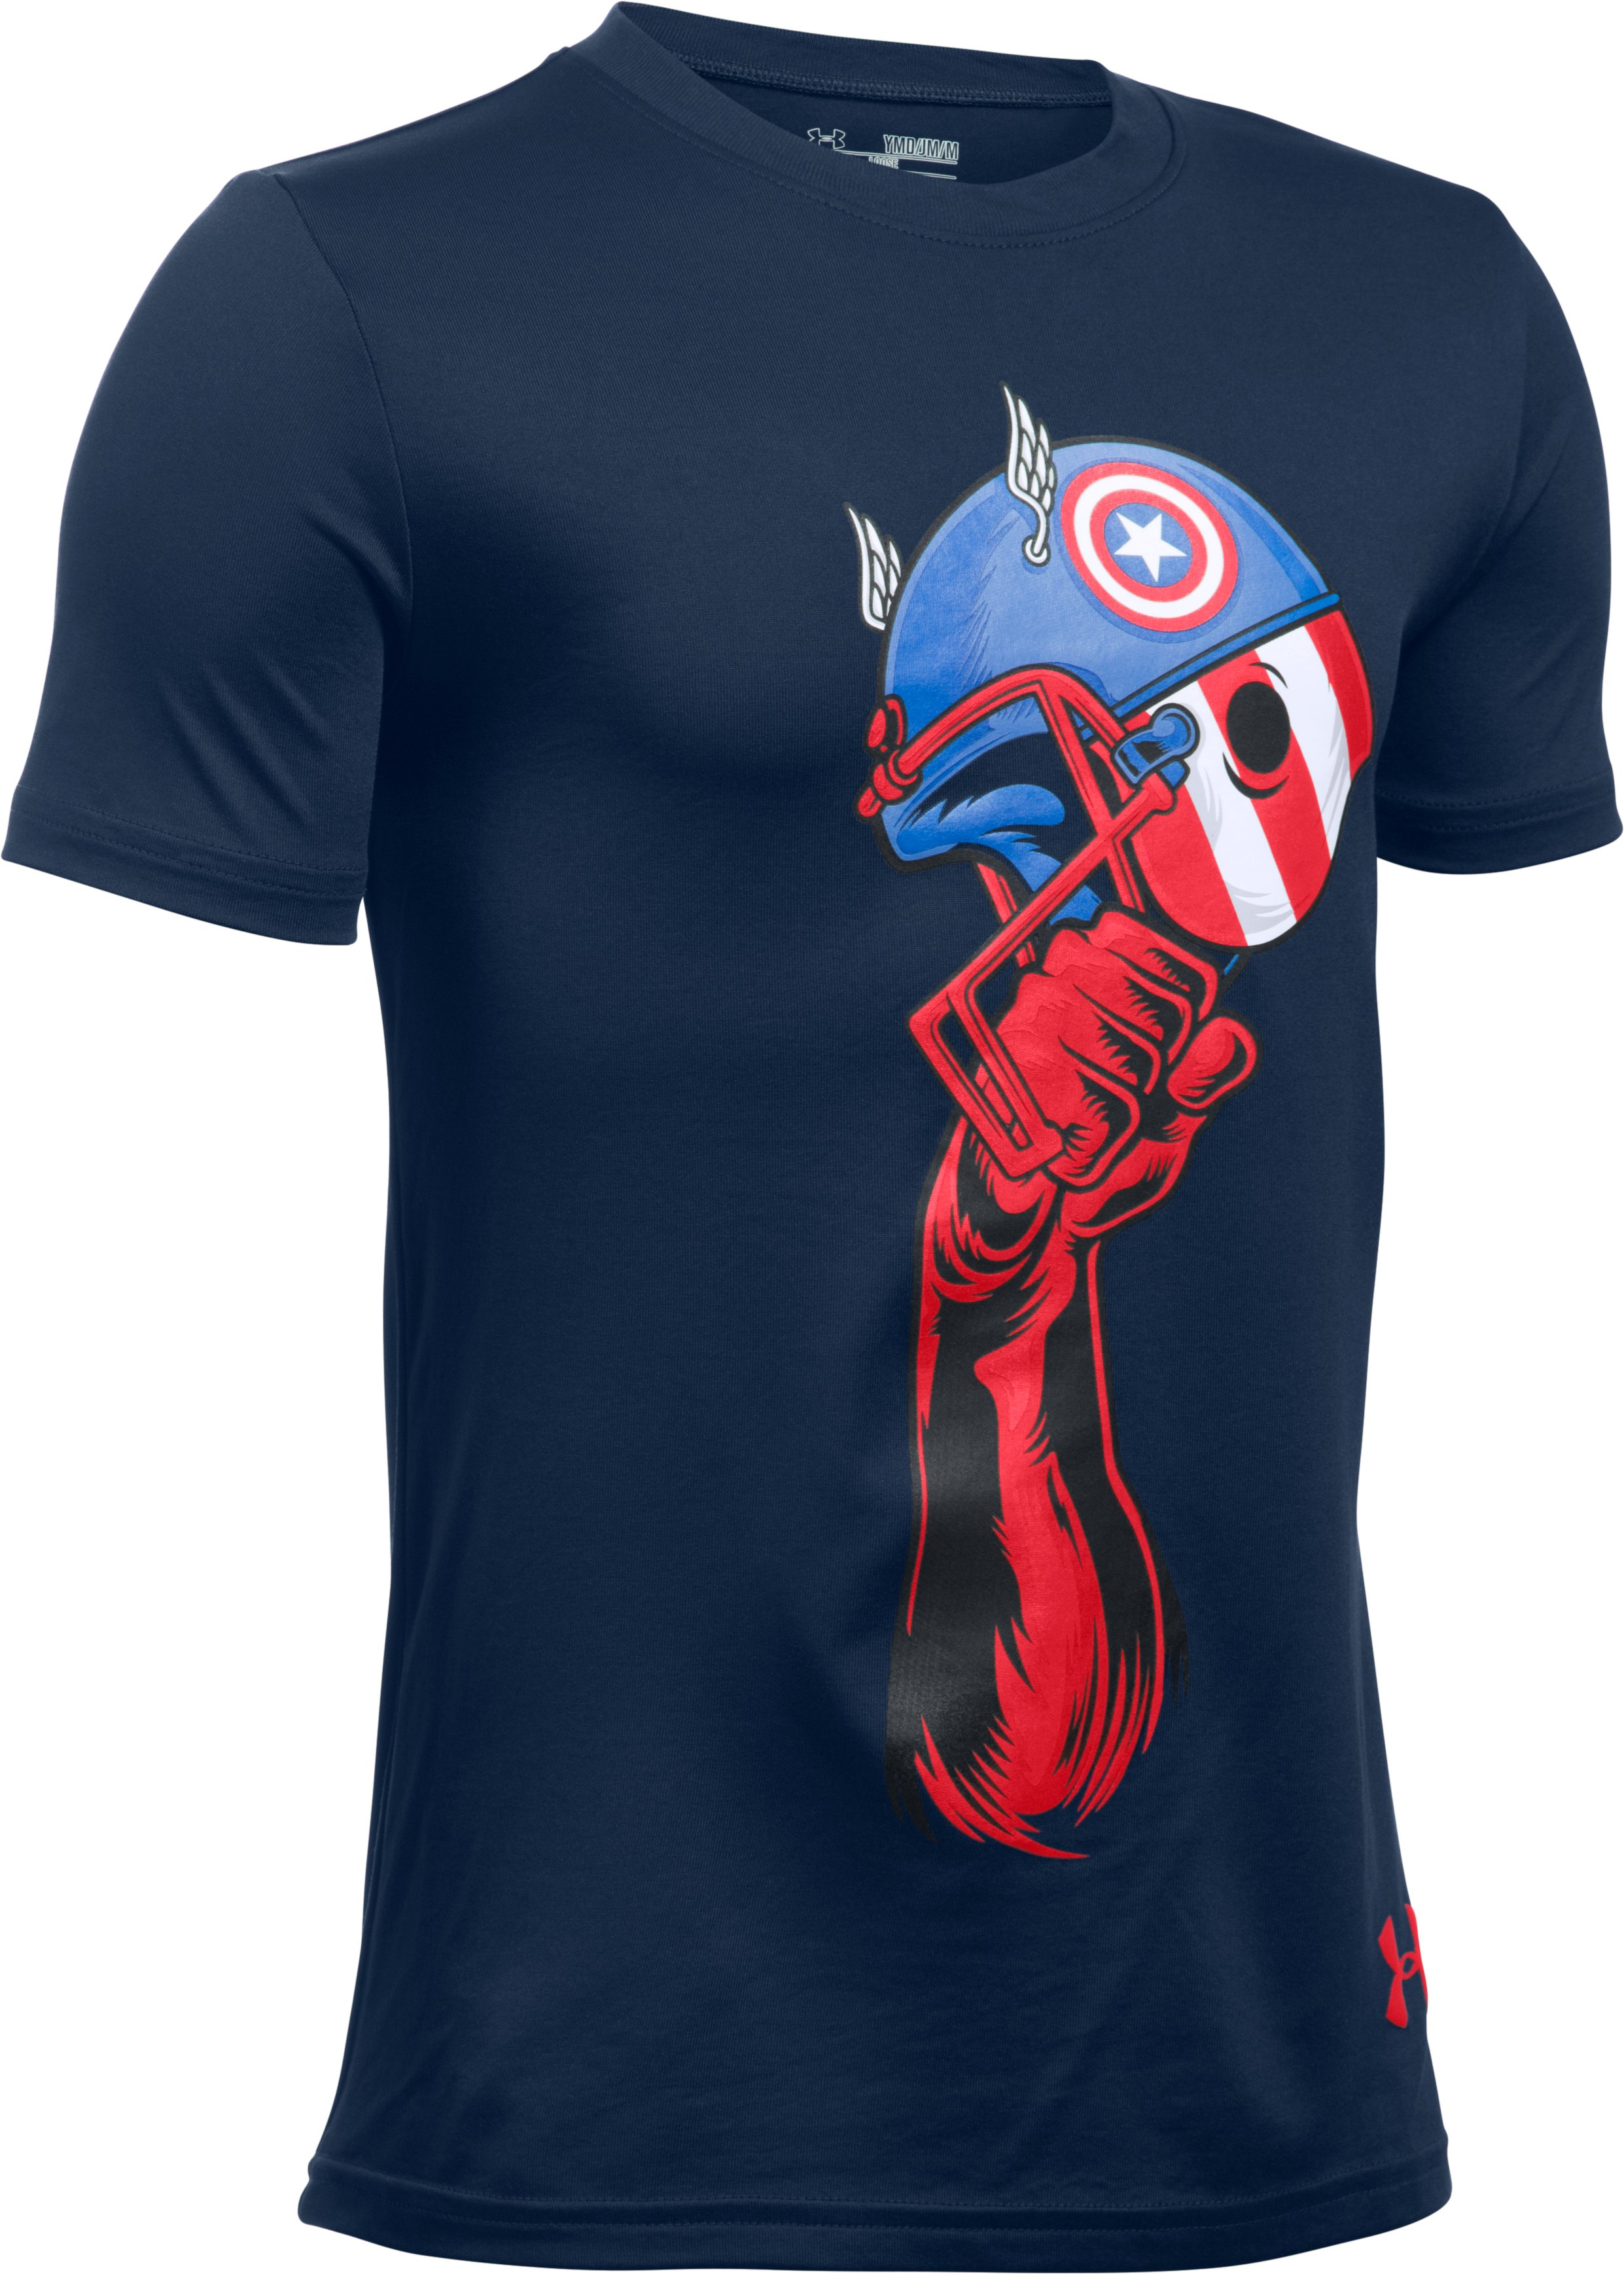 Boys' Under Armour® Alter Ego Captain America Helmet T- Shirt, NAVY SEAL